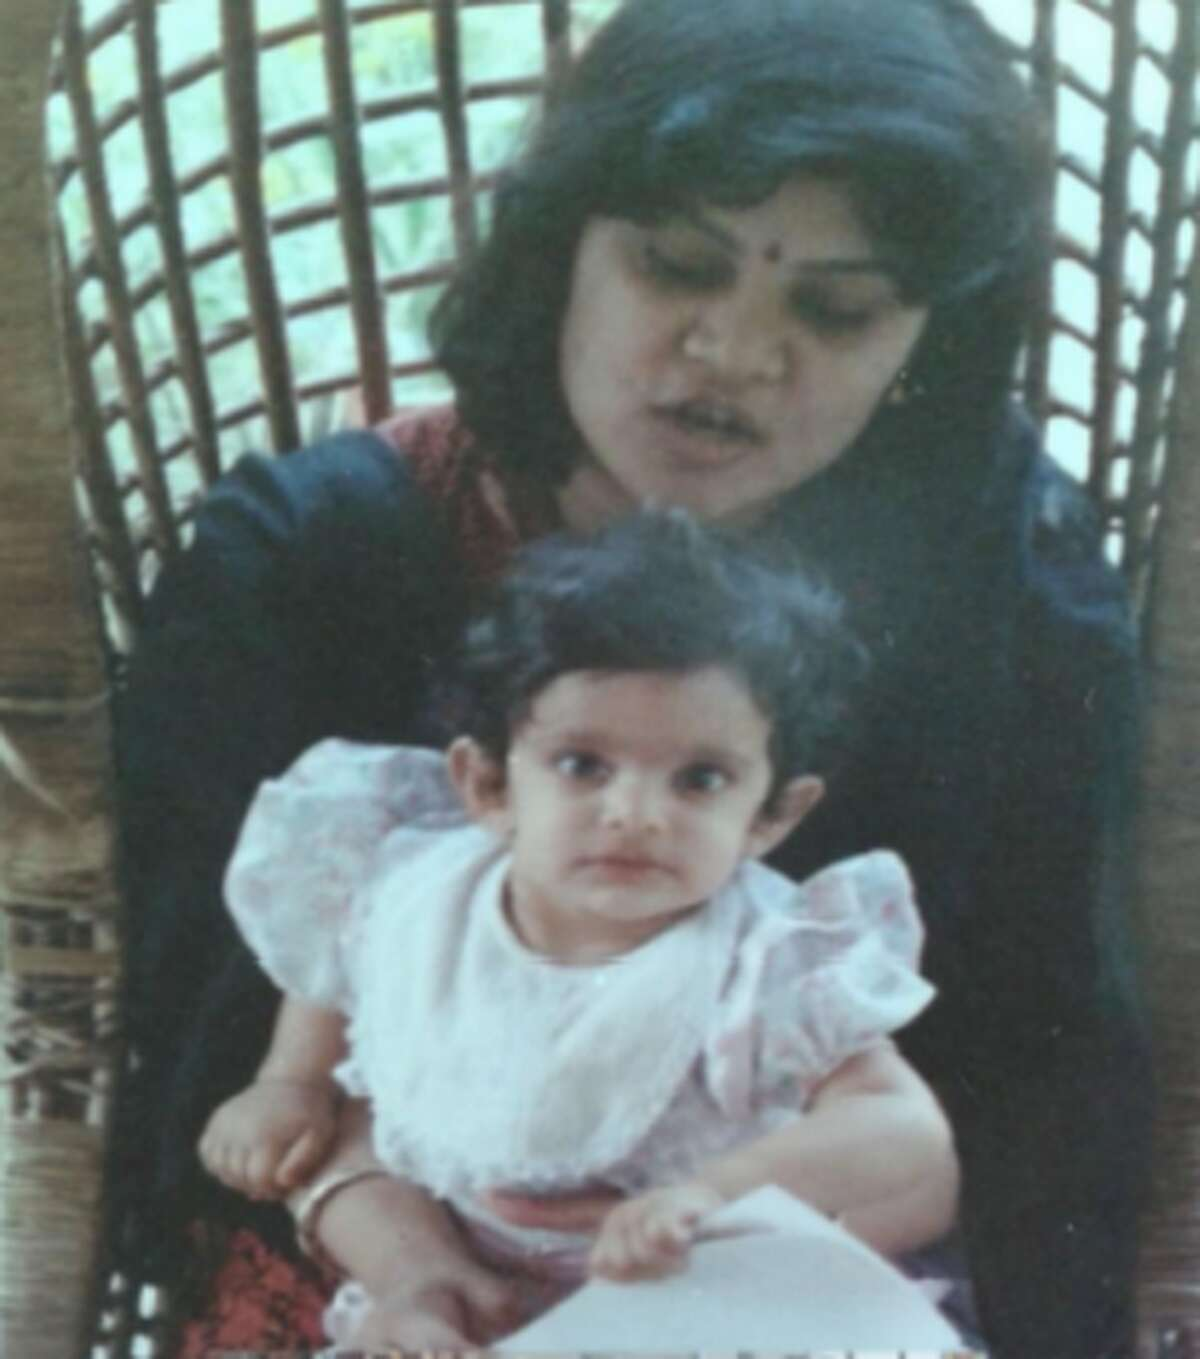 1. My parents are immigrants from India. They immigrated to upstate New York where I grew up.